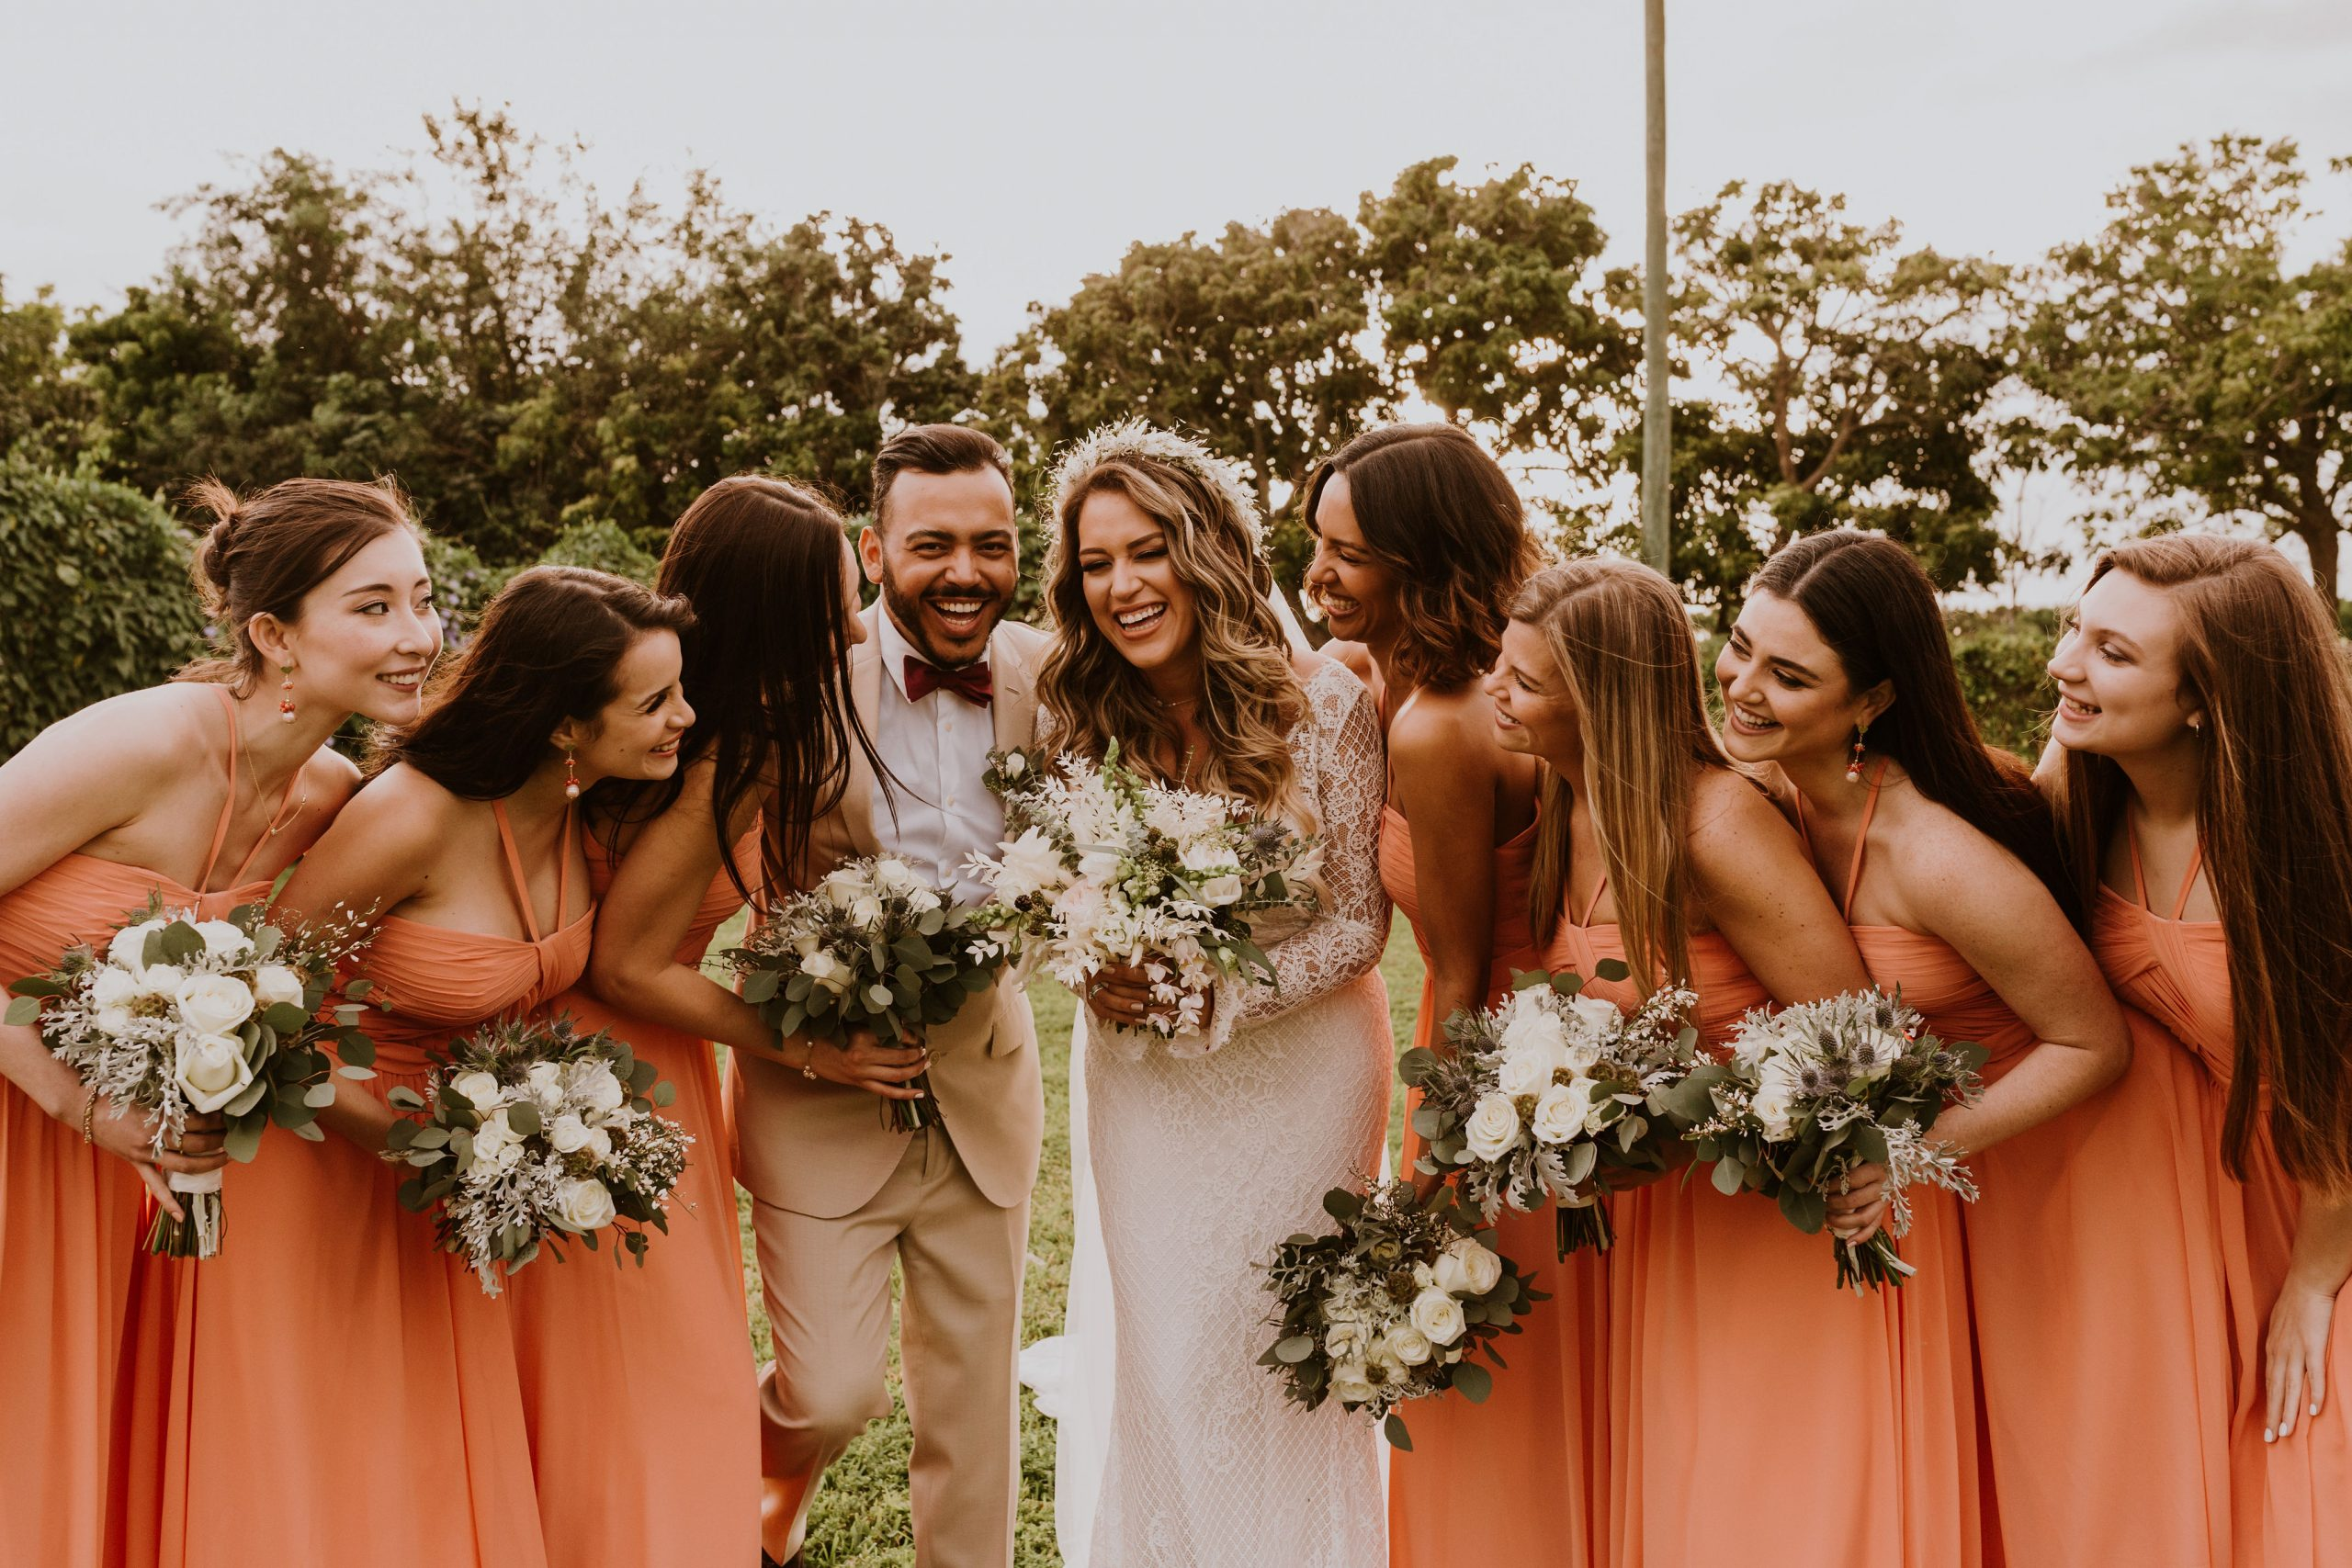 Bride Laughing with Her Bridesmaids Wearing Peach Bridesmaid Dress Ideas